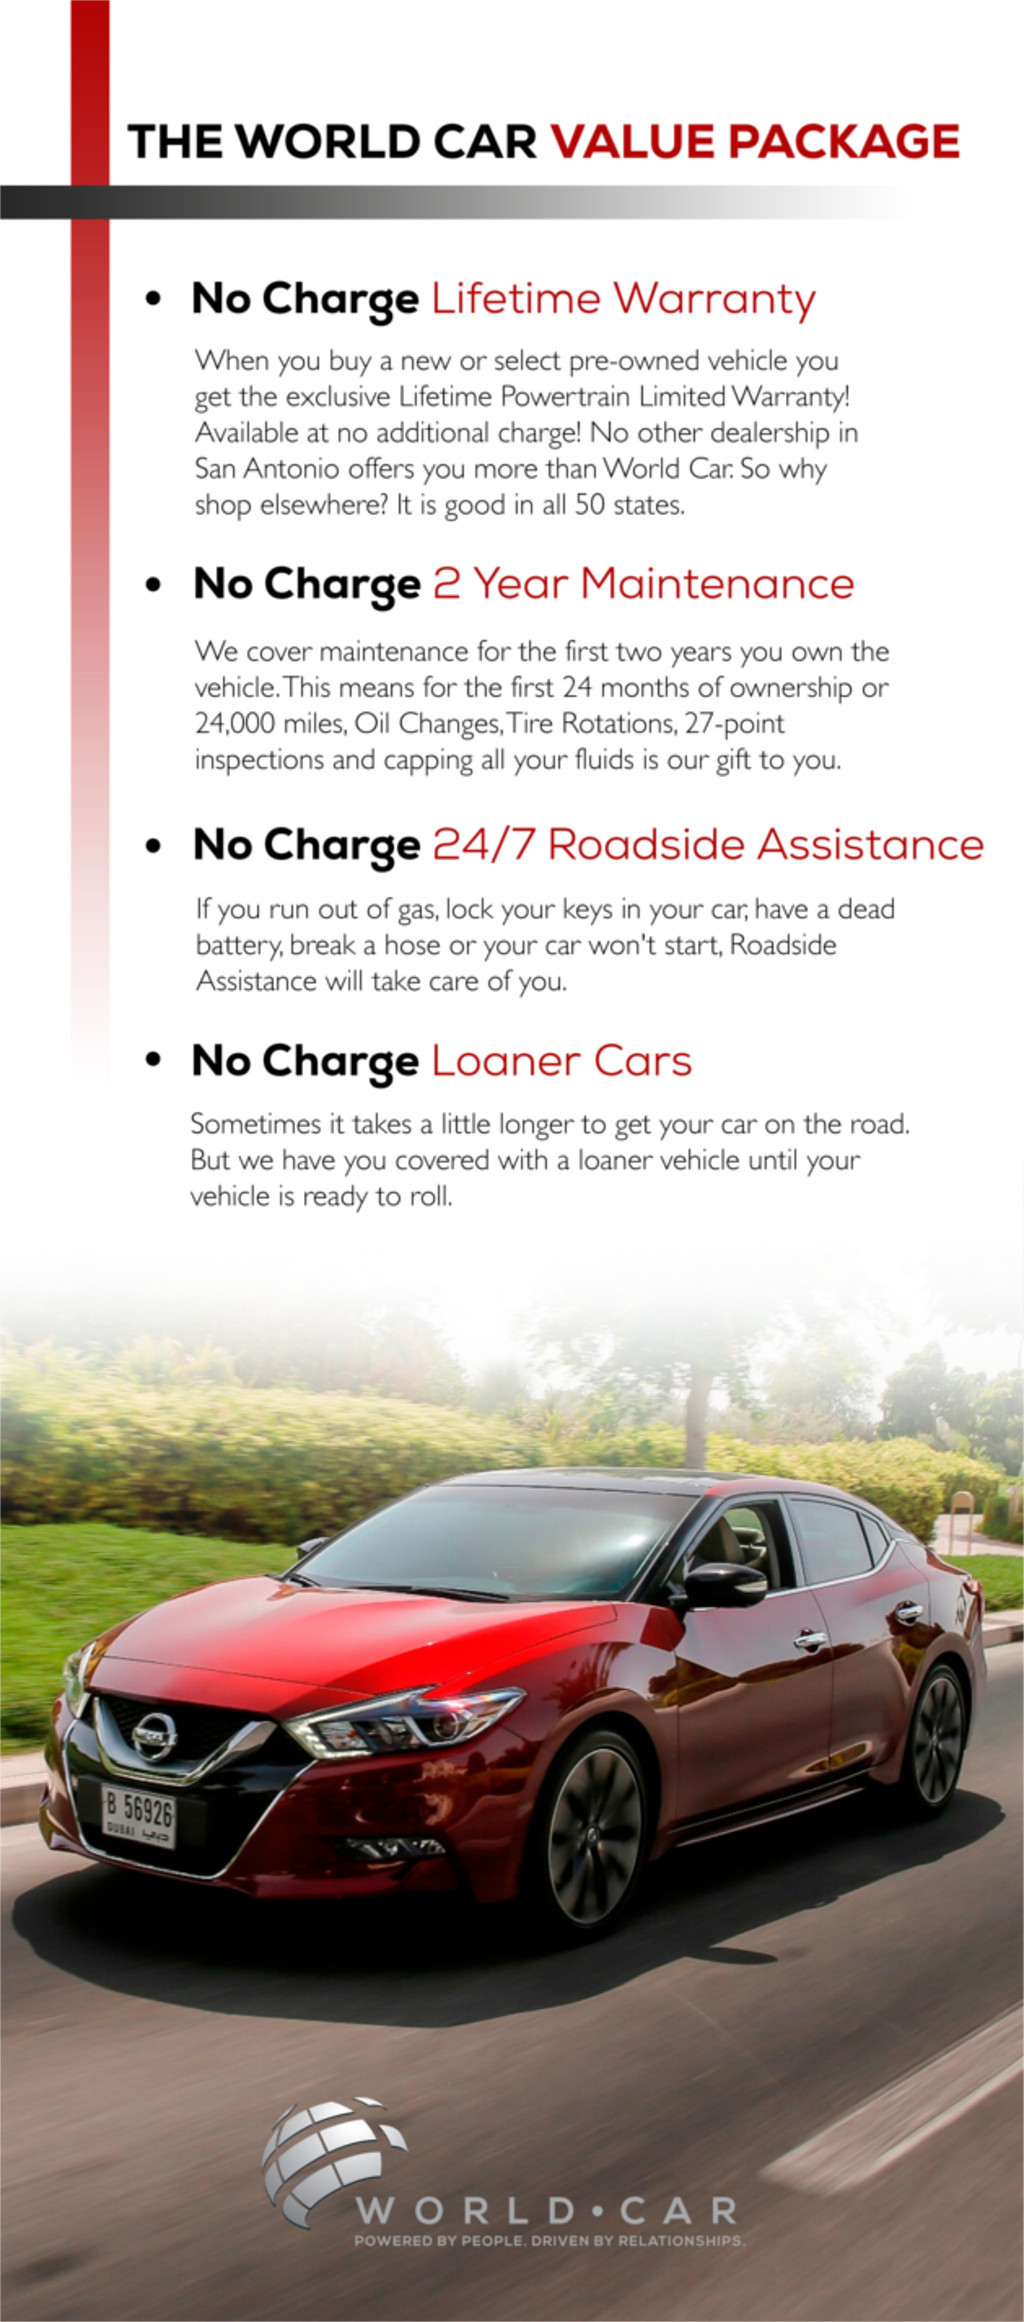 World car nissan value package